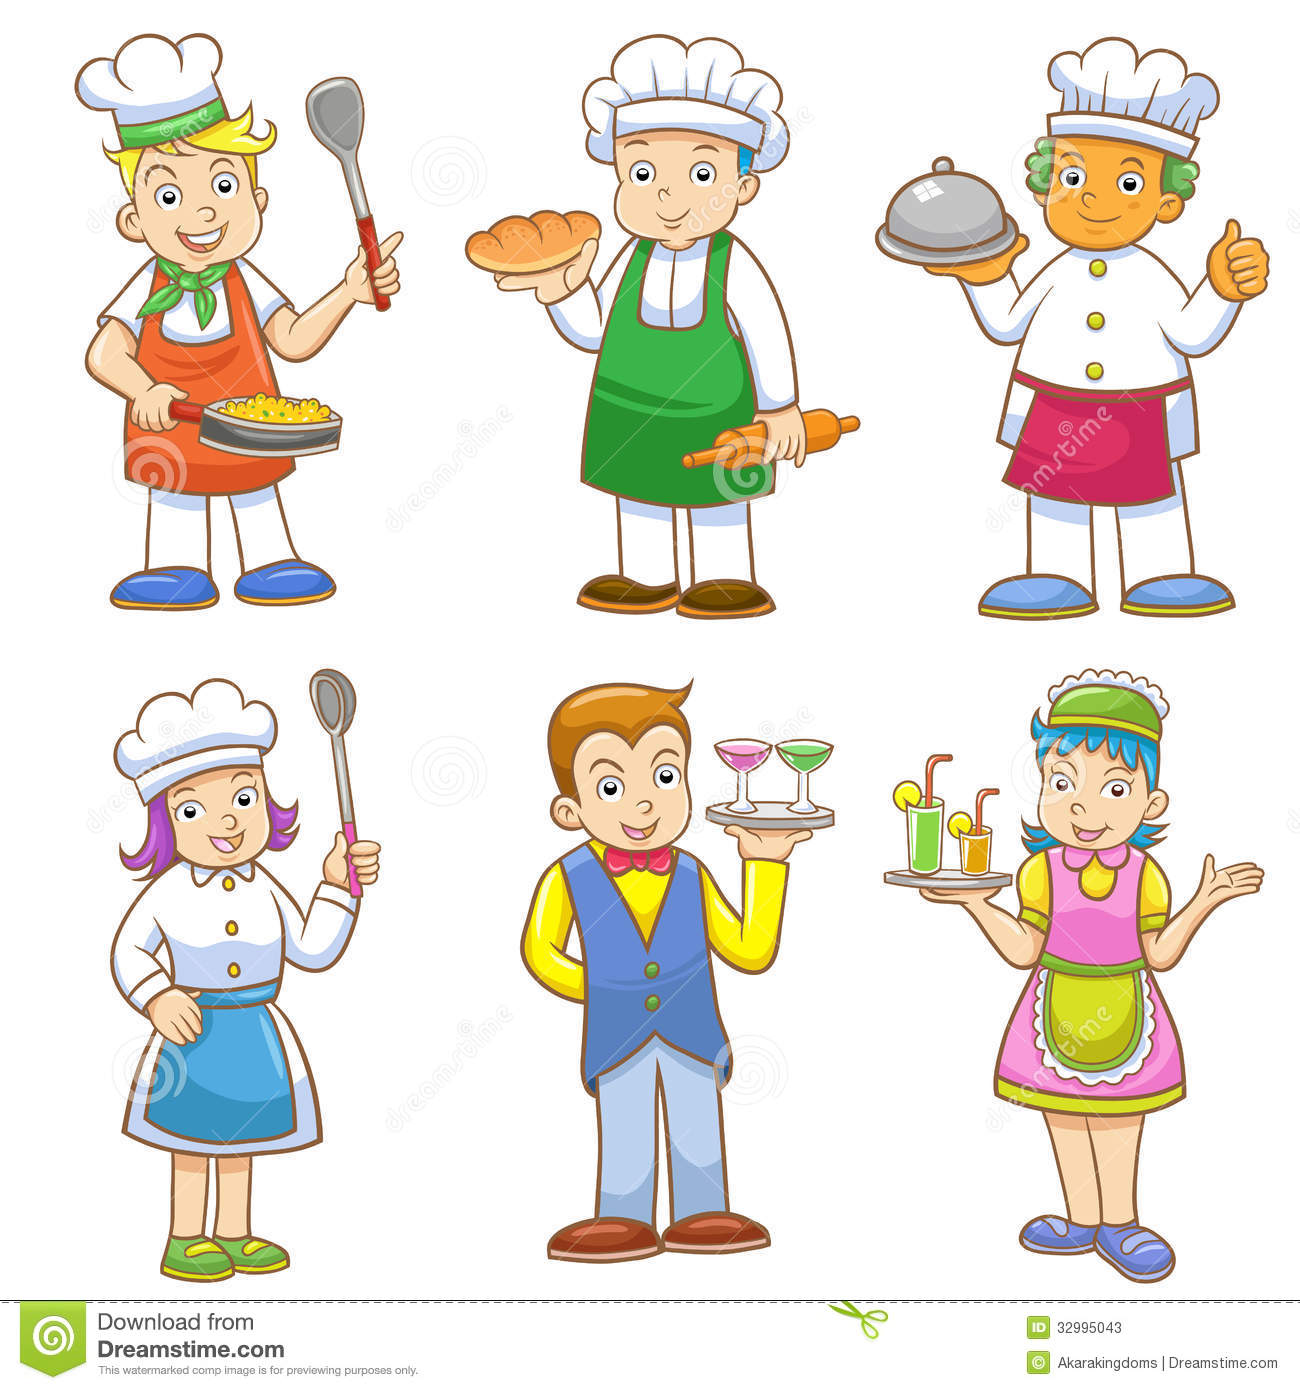 Children chef clipart. Kids cooking stock illustrations